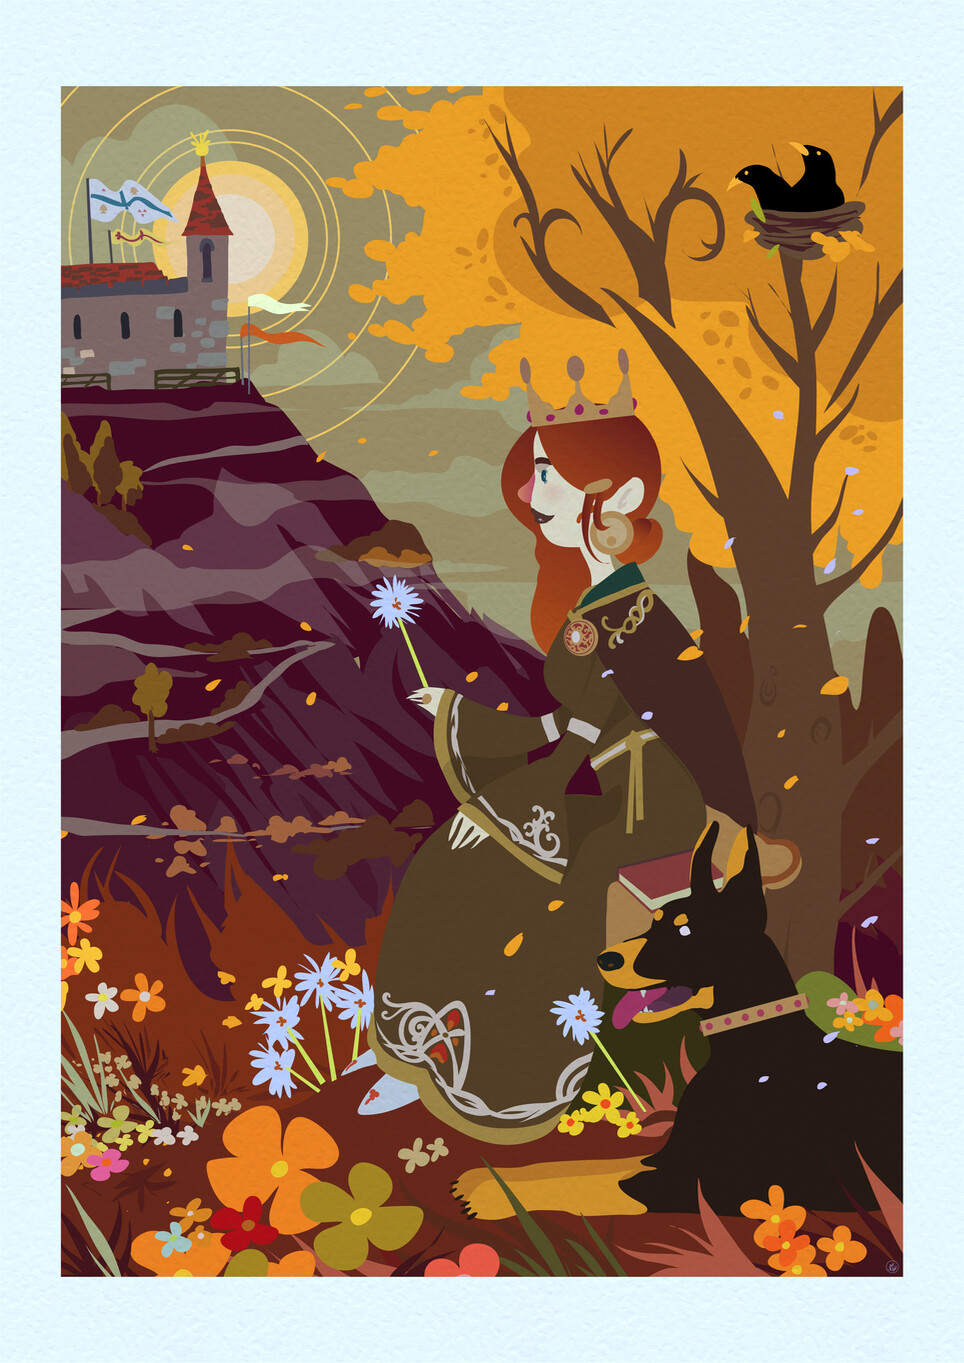 Girl wearing a crown holding a dandylion and has a dog with her sitting down. There is a tree behind her with two blackbirds. Also in the background is a castle. She is surrounded by flowers.